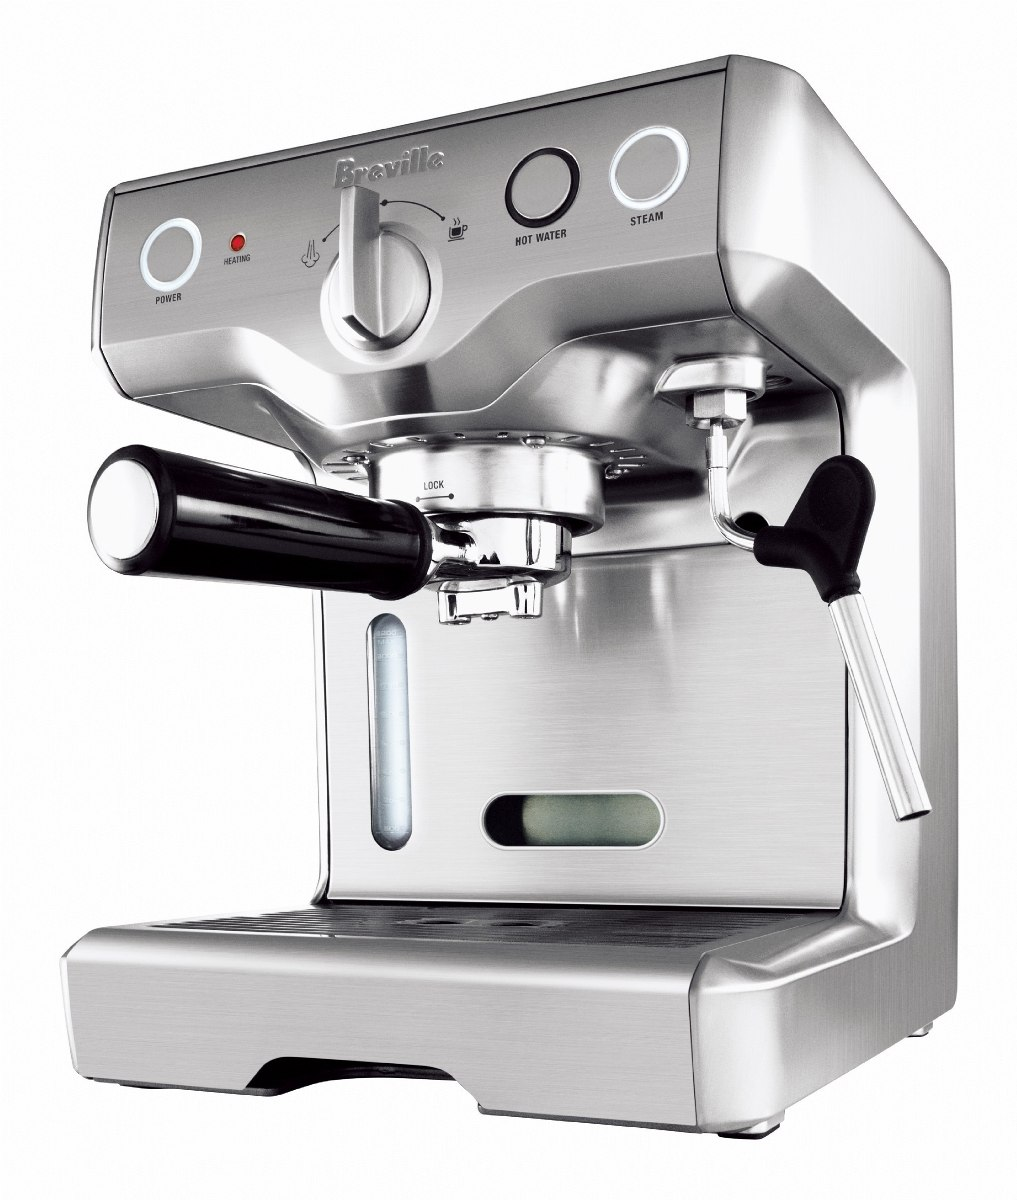 breville 800es espresso machine r em mercado livre. Black Bedroom Furniture Sets. Home Design Ideas